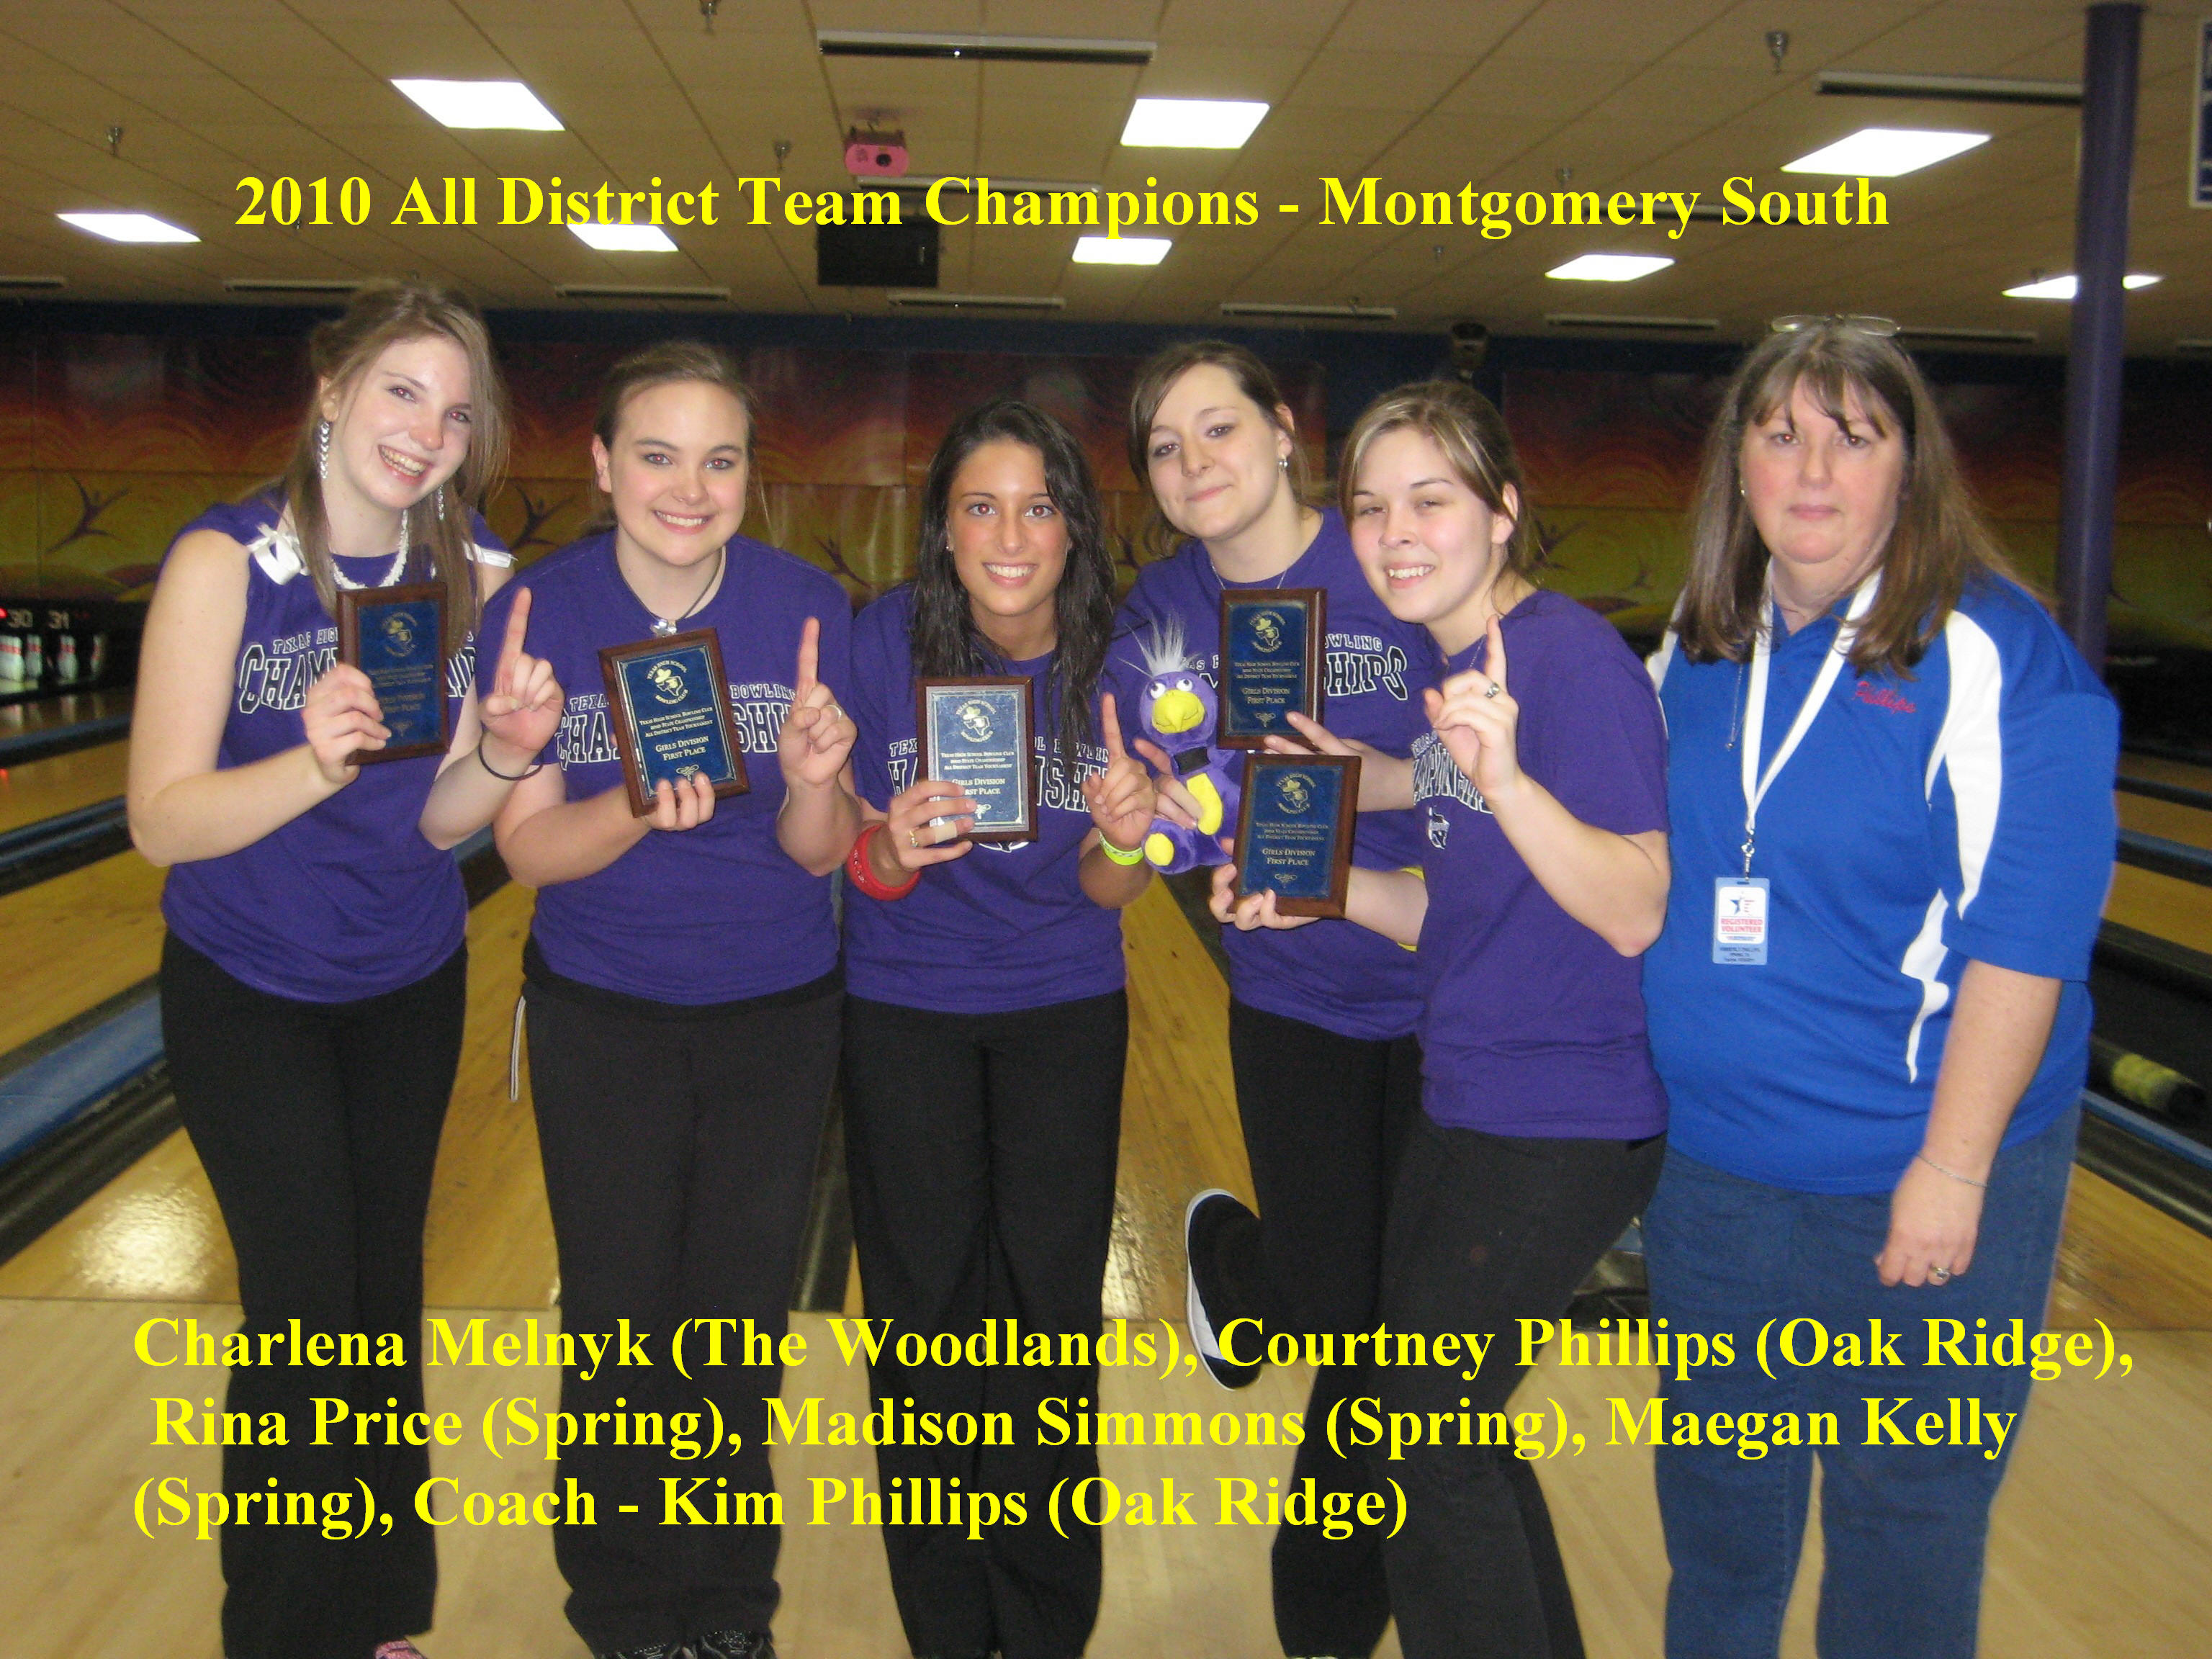 2010 Girls All District